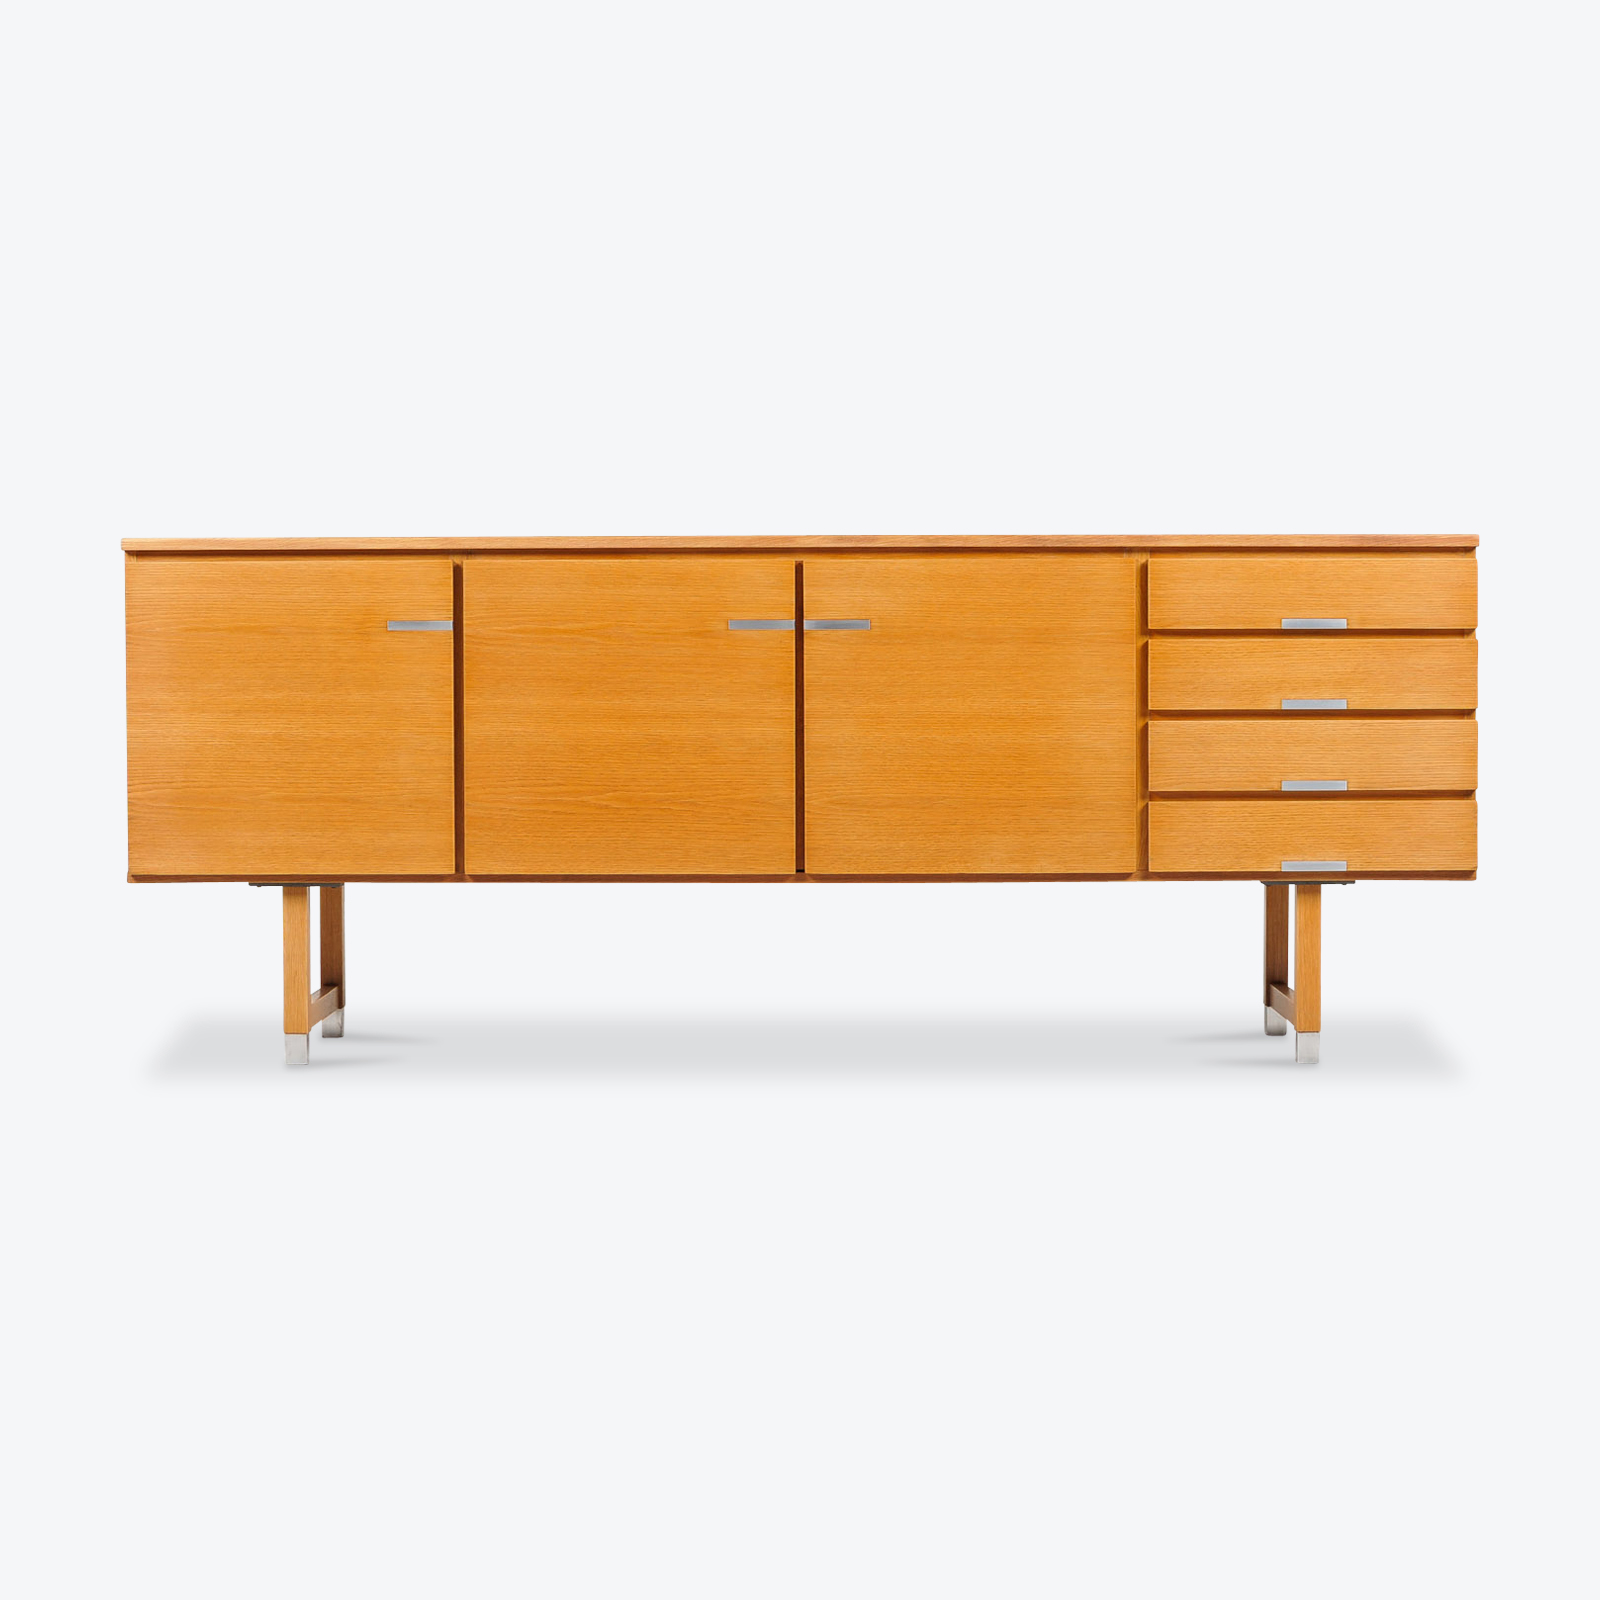 Sideboard By Kai Kristiansen For Fm Mobler In Oak With Polished Aluminium Details 1960s Denmark 01